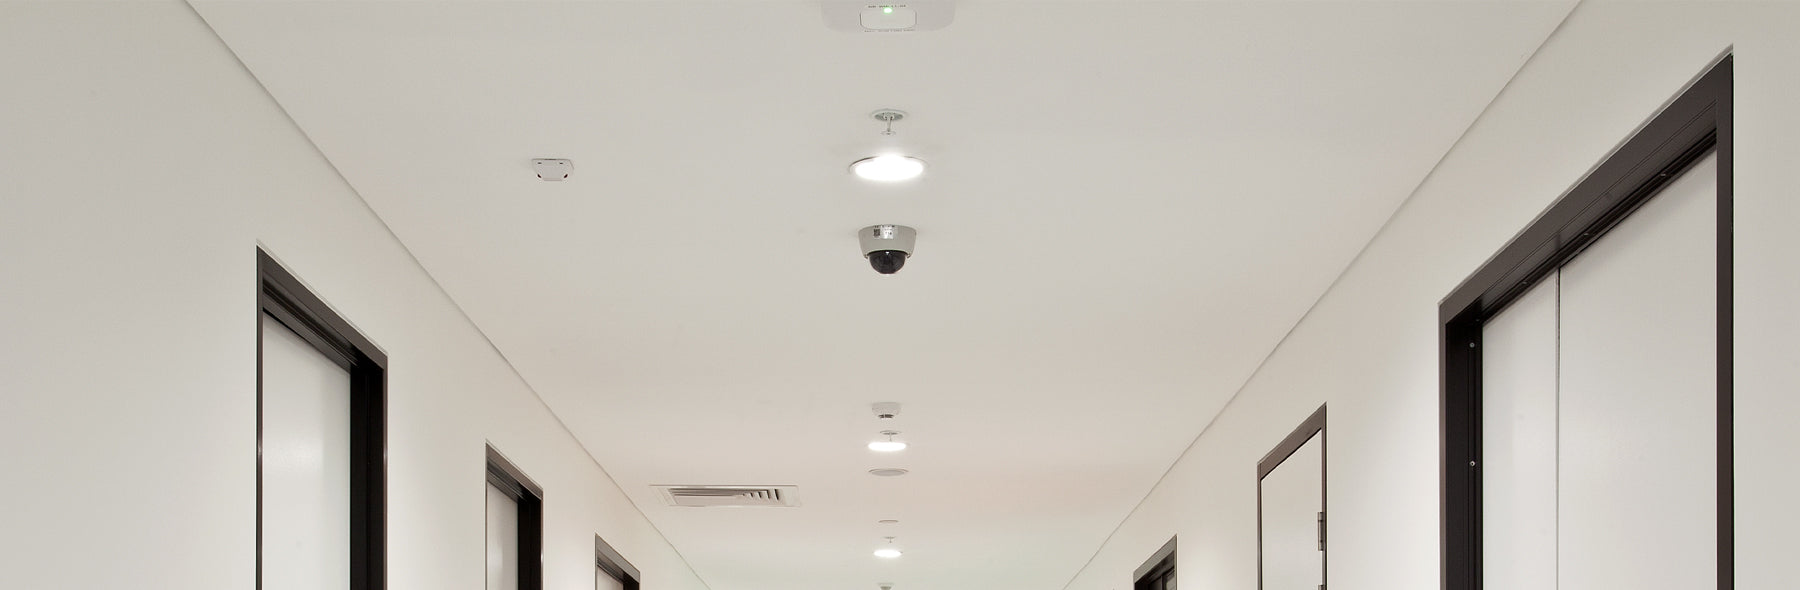 Concealed ceiling systems